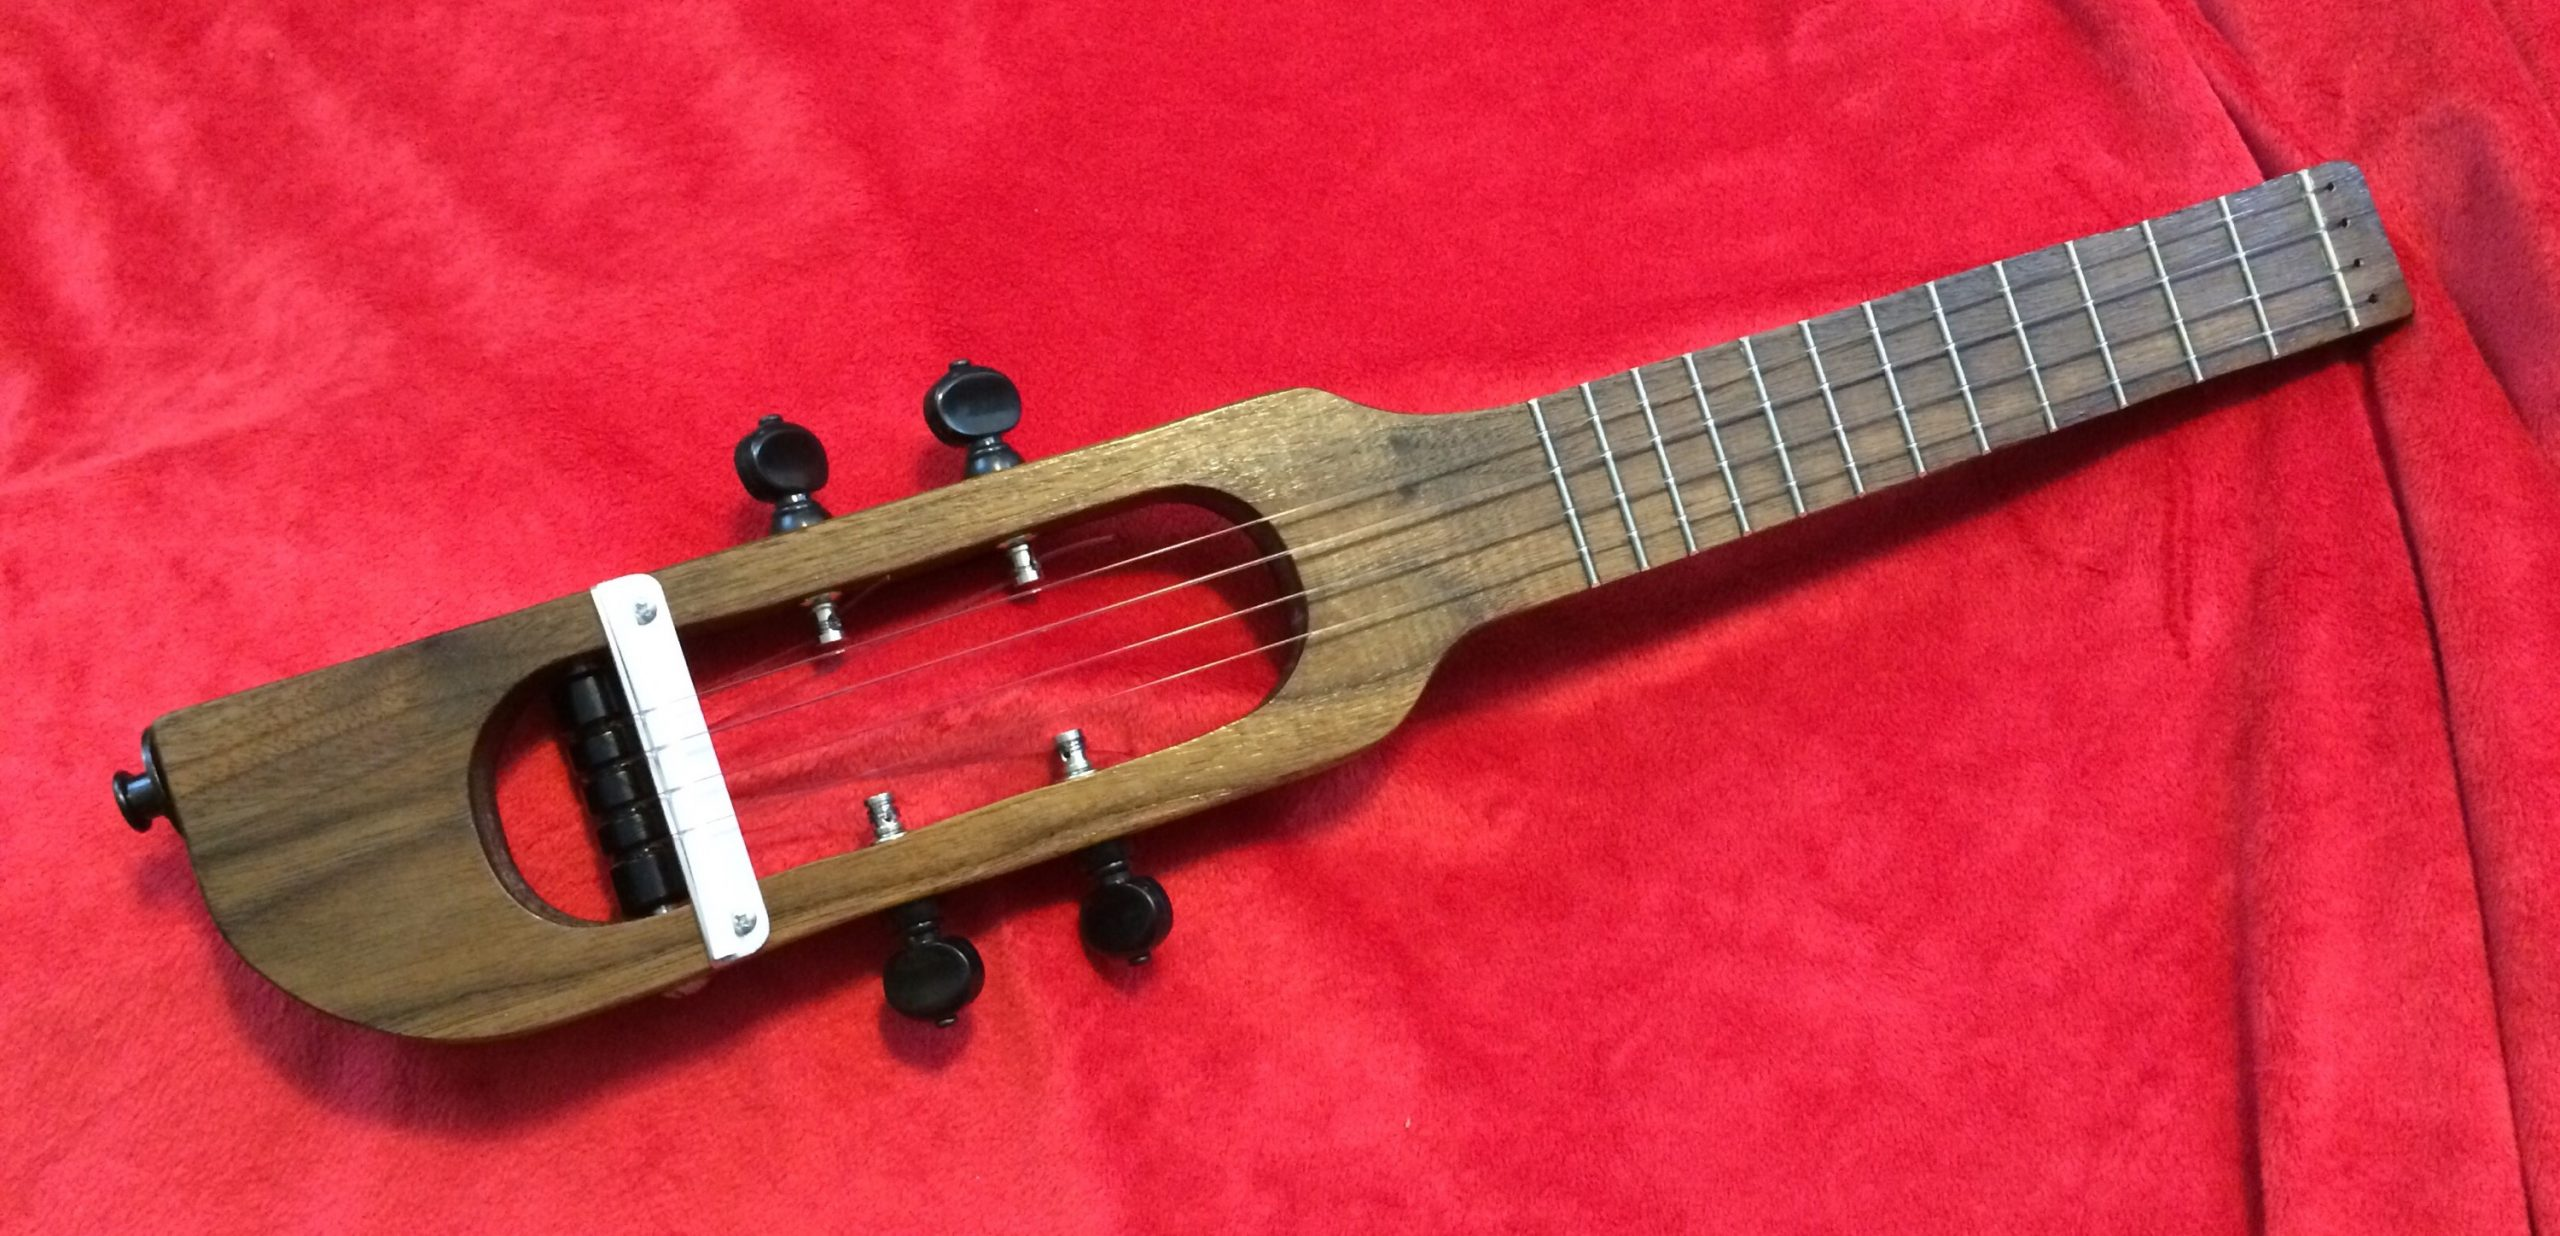 Building A Travel Ukulele | Circuits And Strings